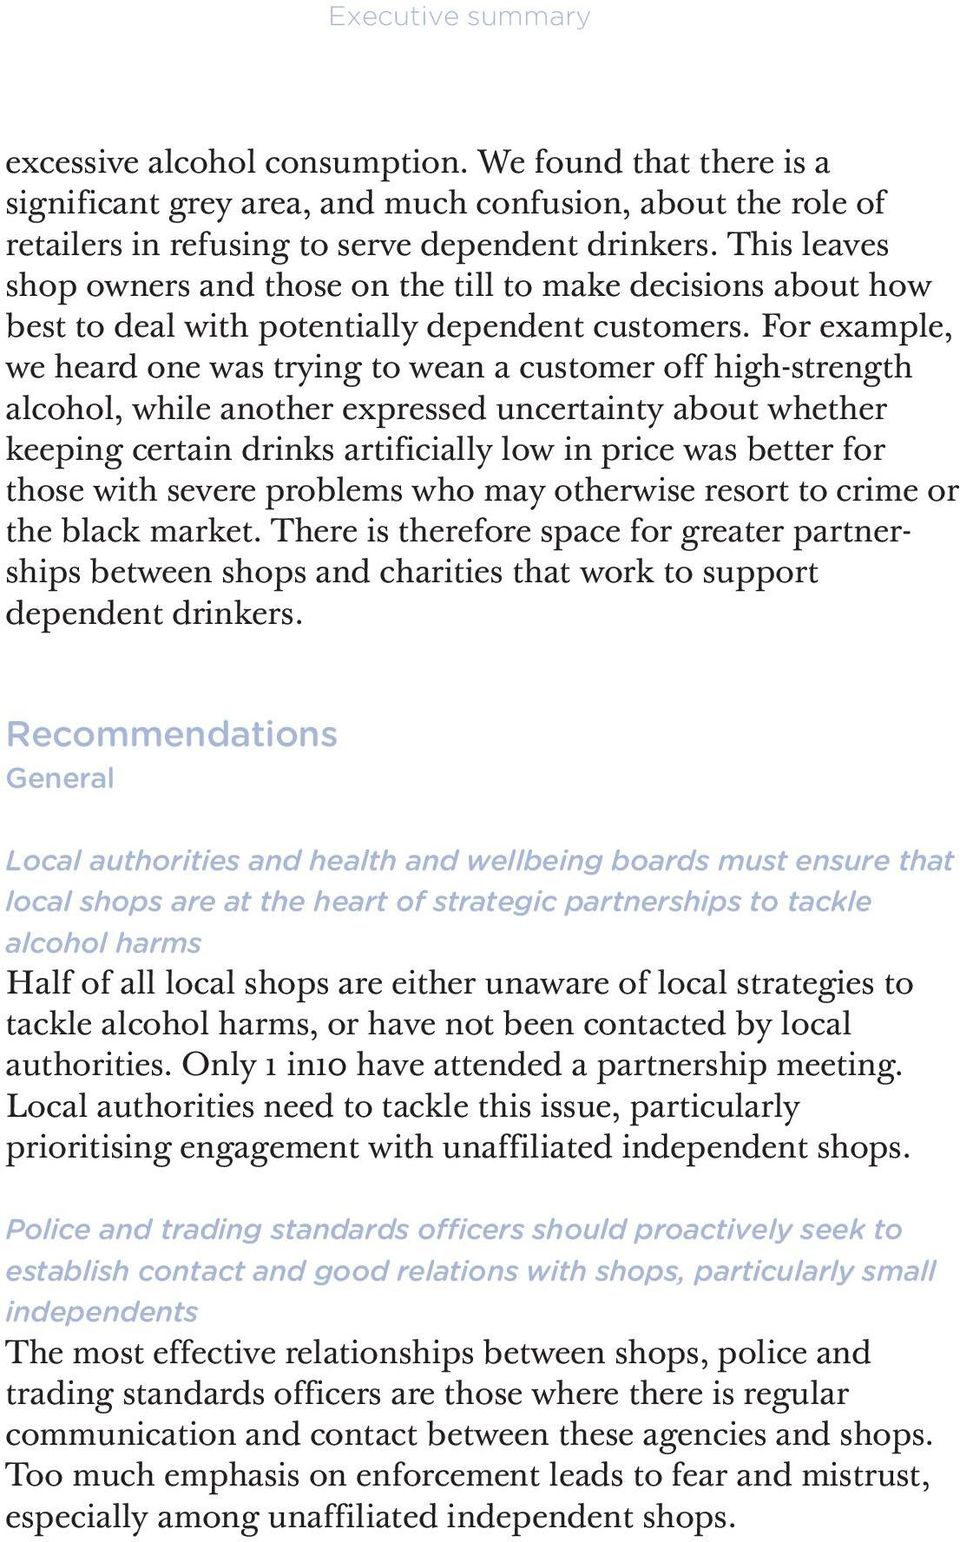 For example, we heard one was trying to wean a customer off high-strength alcohol, while another expressed uncertainty about whether keeping certain drinks artificially low in price was better for